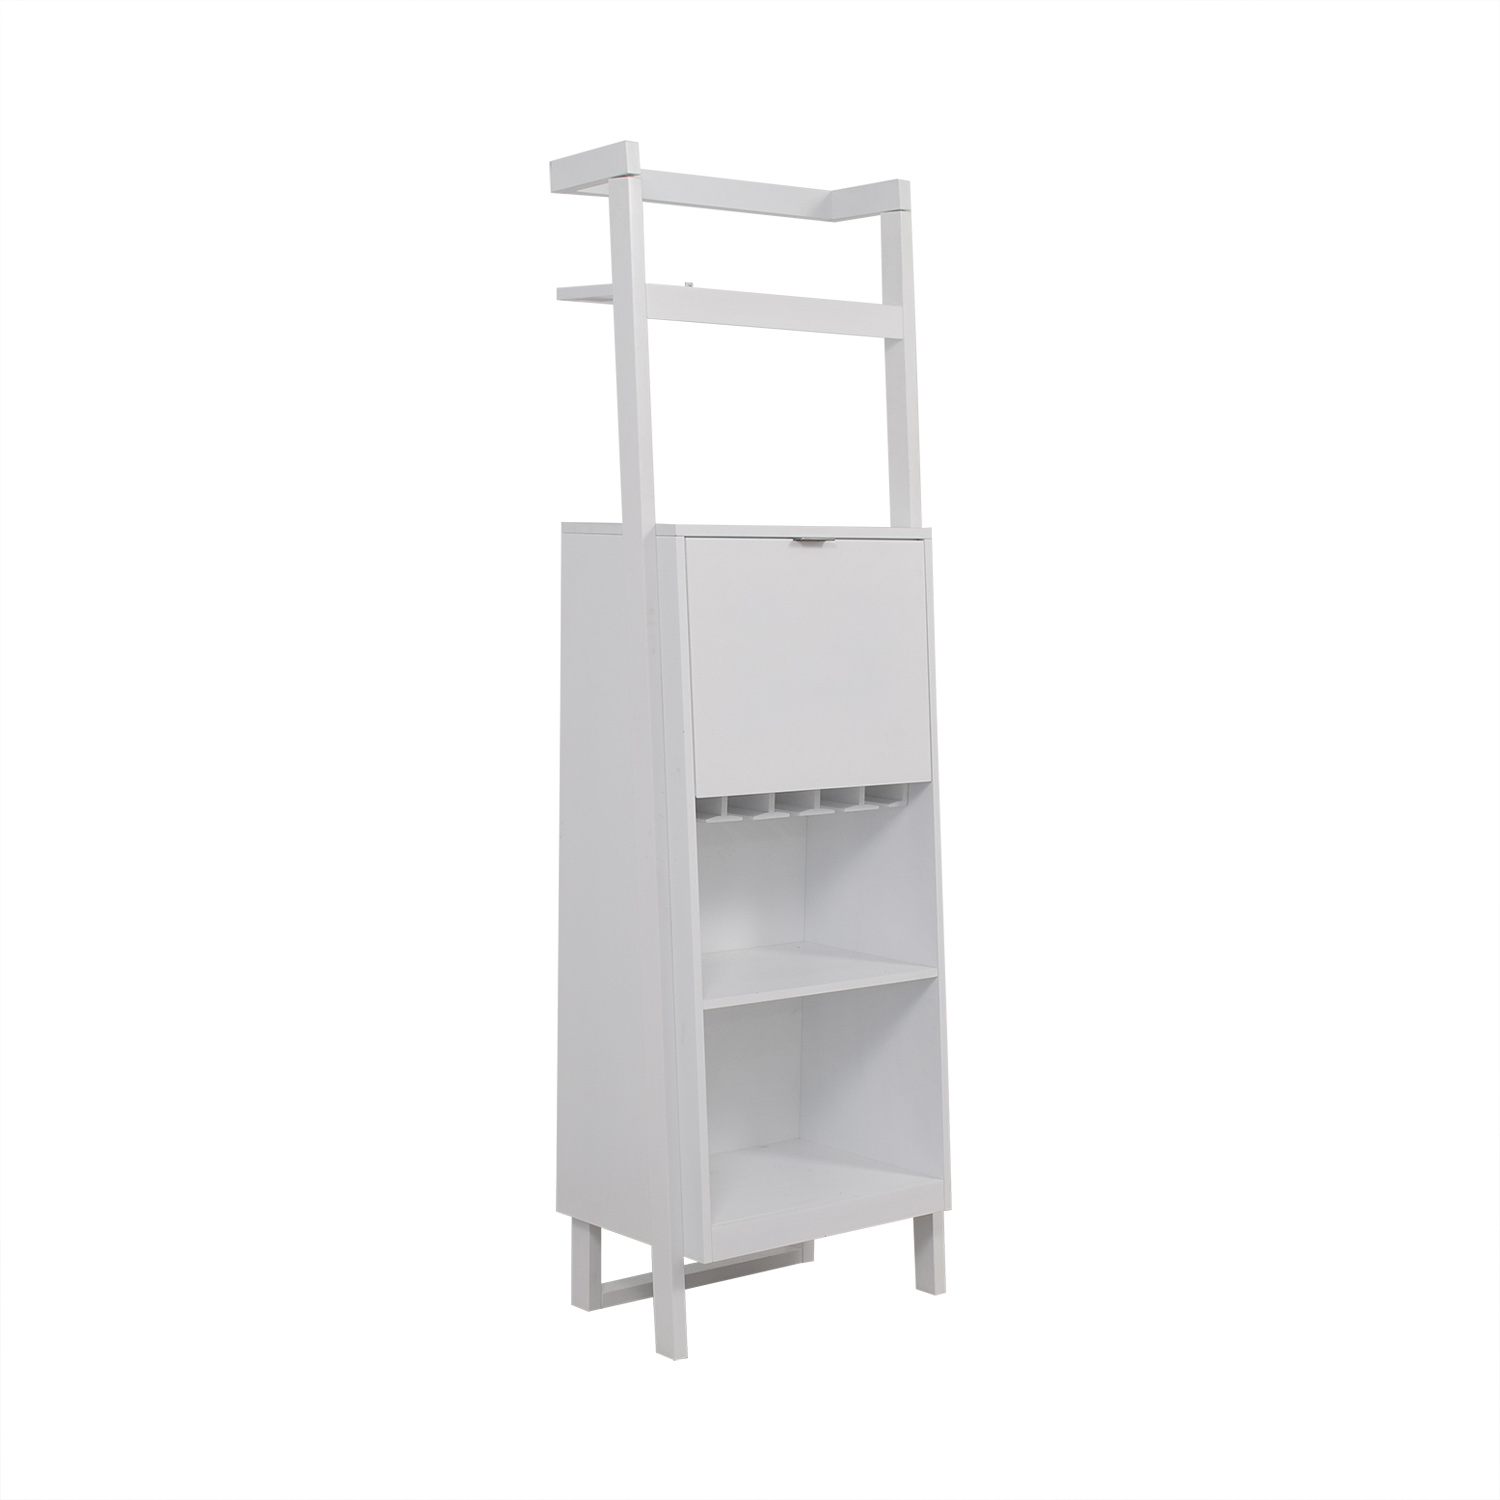 Crate & Barrel Crate & Barrel Sawyer White Leaning Spirit Cabinet nyc